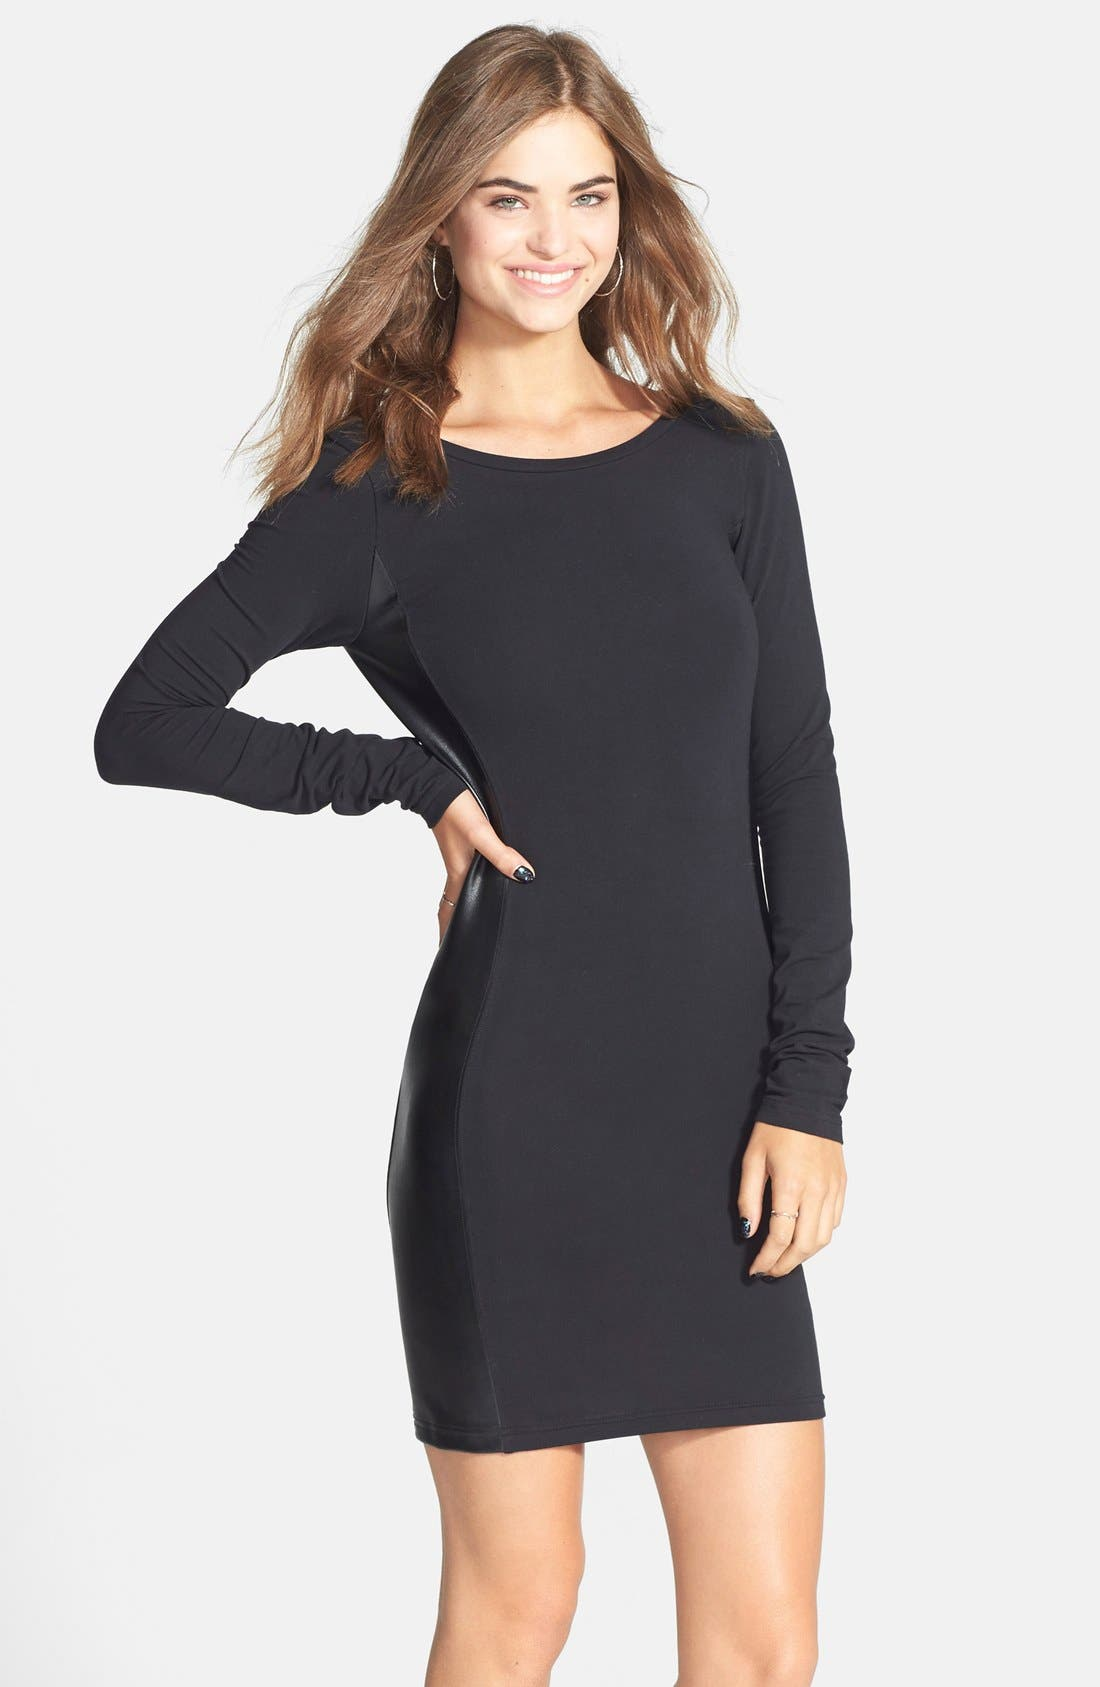 Alternate Image 1 Selected - Frenchi® Faux Leather Panel Body-Con Dress (Juniors)